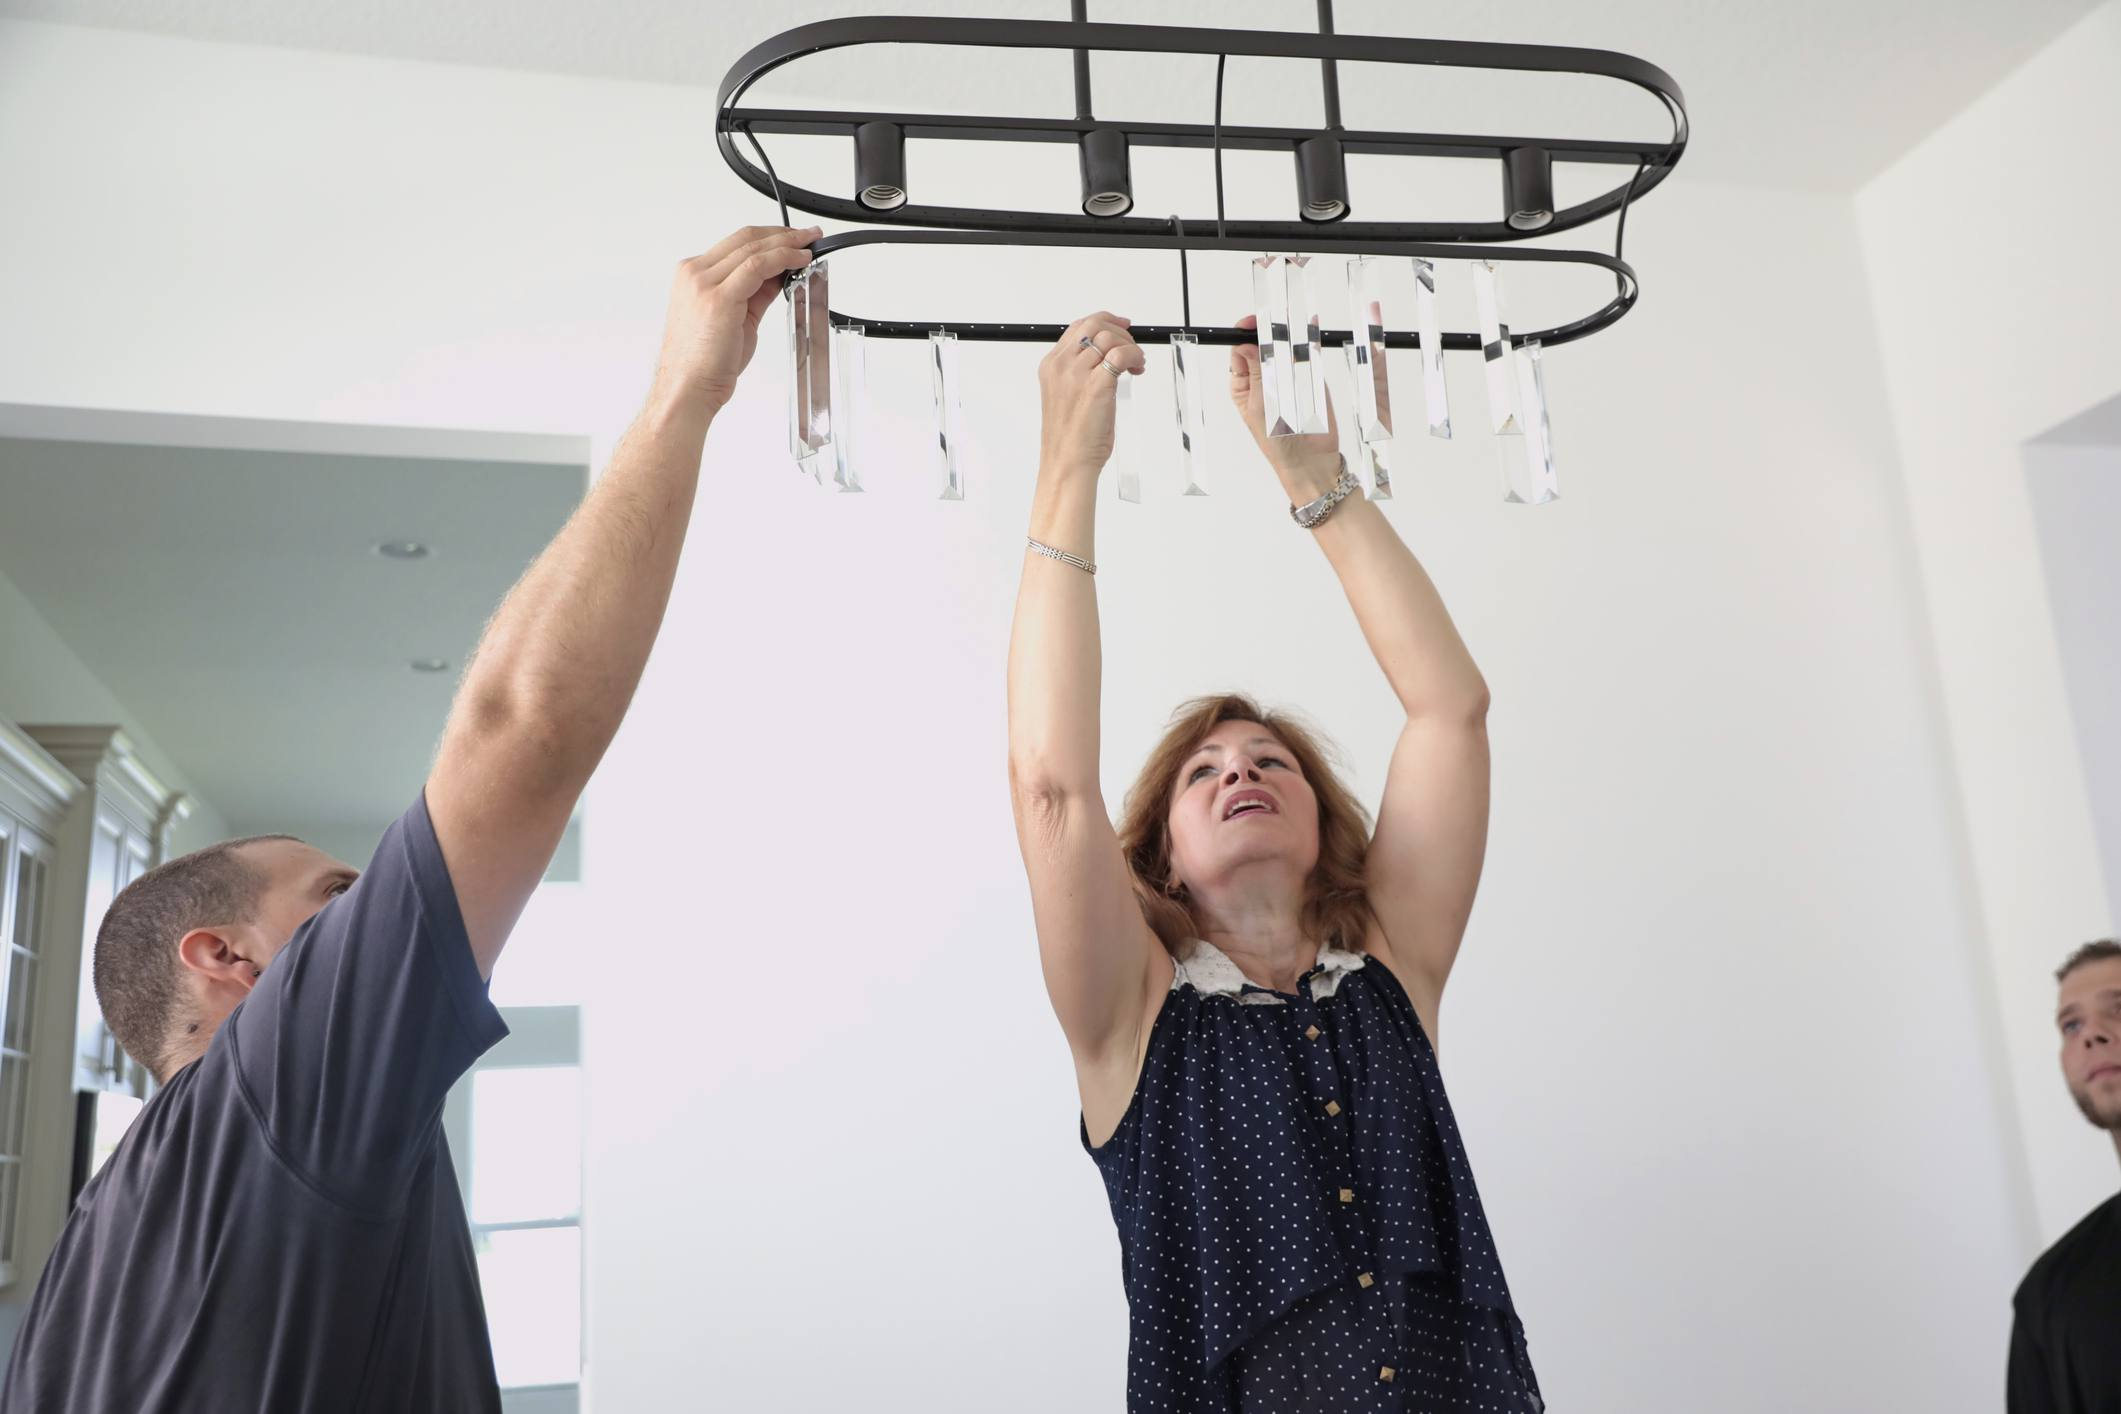 Professional home staging consultant helping install a chandelier in home for sale